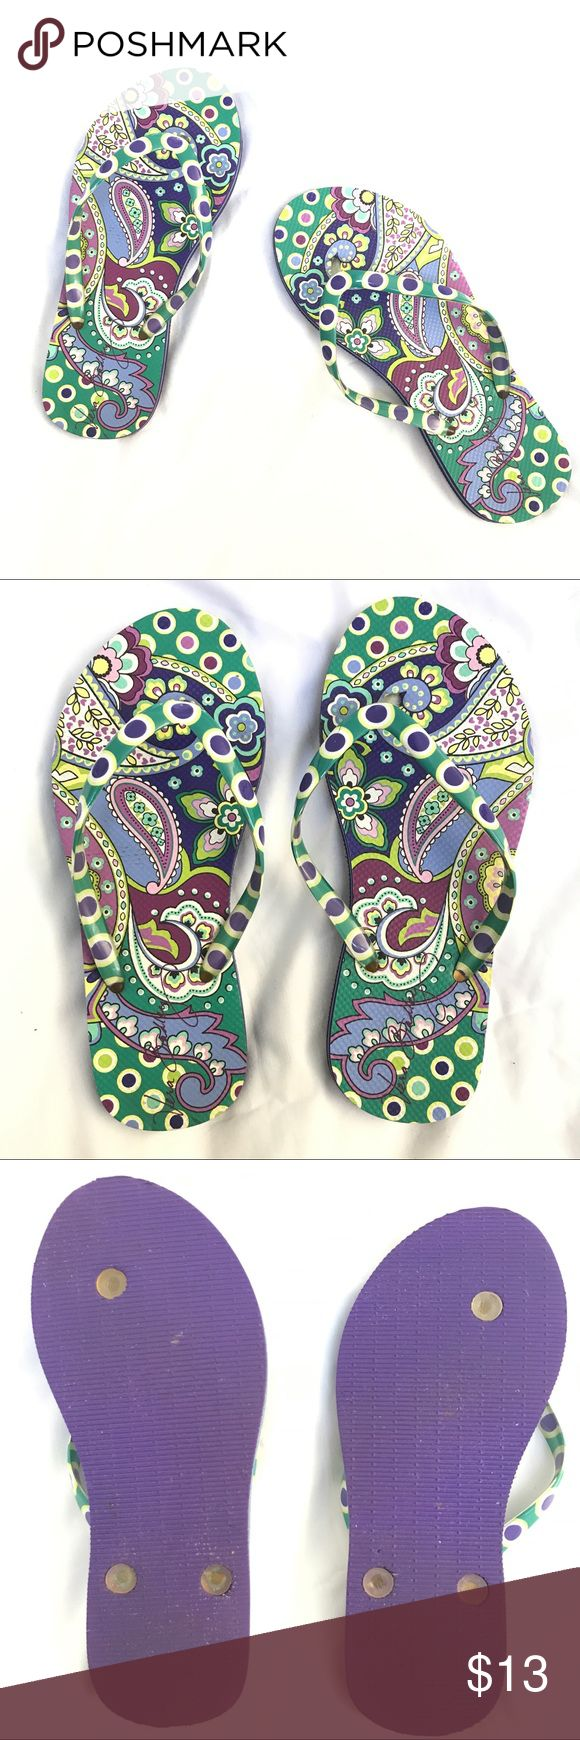 Vera Bradley Purple Green Flip Flop Sandals Bundle save 20% on your purchase, and I love offers!🎉😃🎉 These have been worn once, and cleaned.  Two words describe our Flip Flops: comfortable and cute. You'll be the belle of the boardwalk when you wear them! Textured anti-slip outer sole.  Dimensions S: 5 - 6 Vera Bradley Shoes Sandals